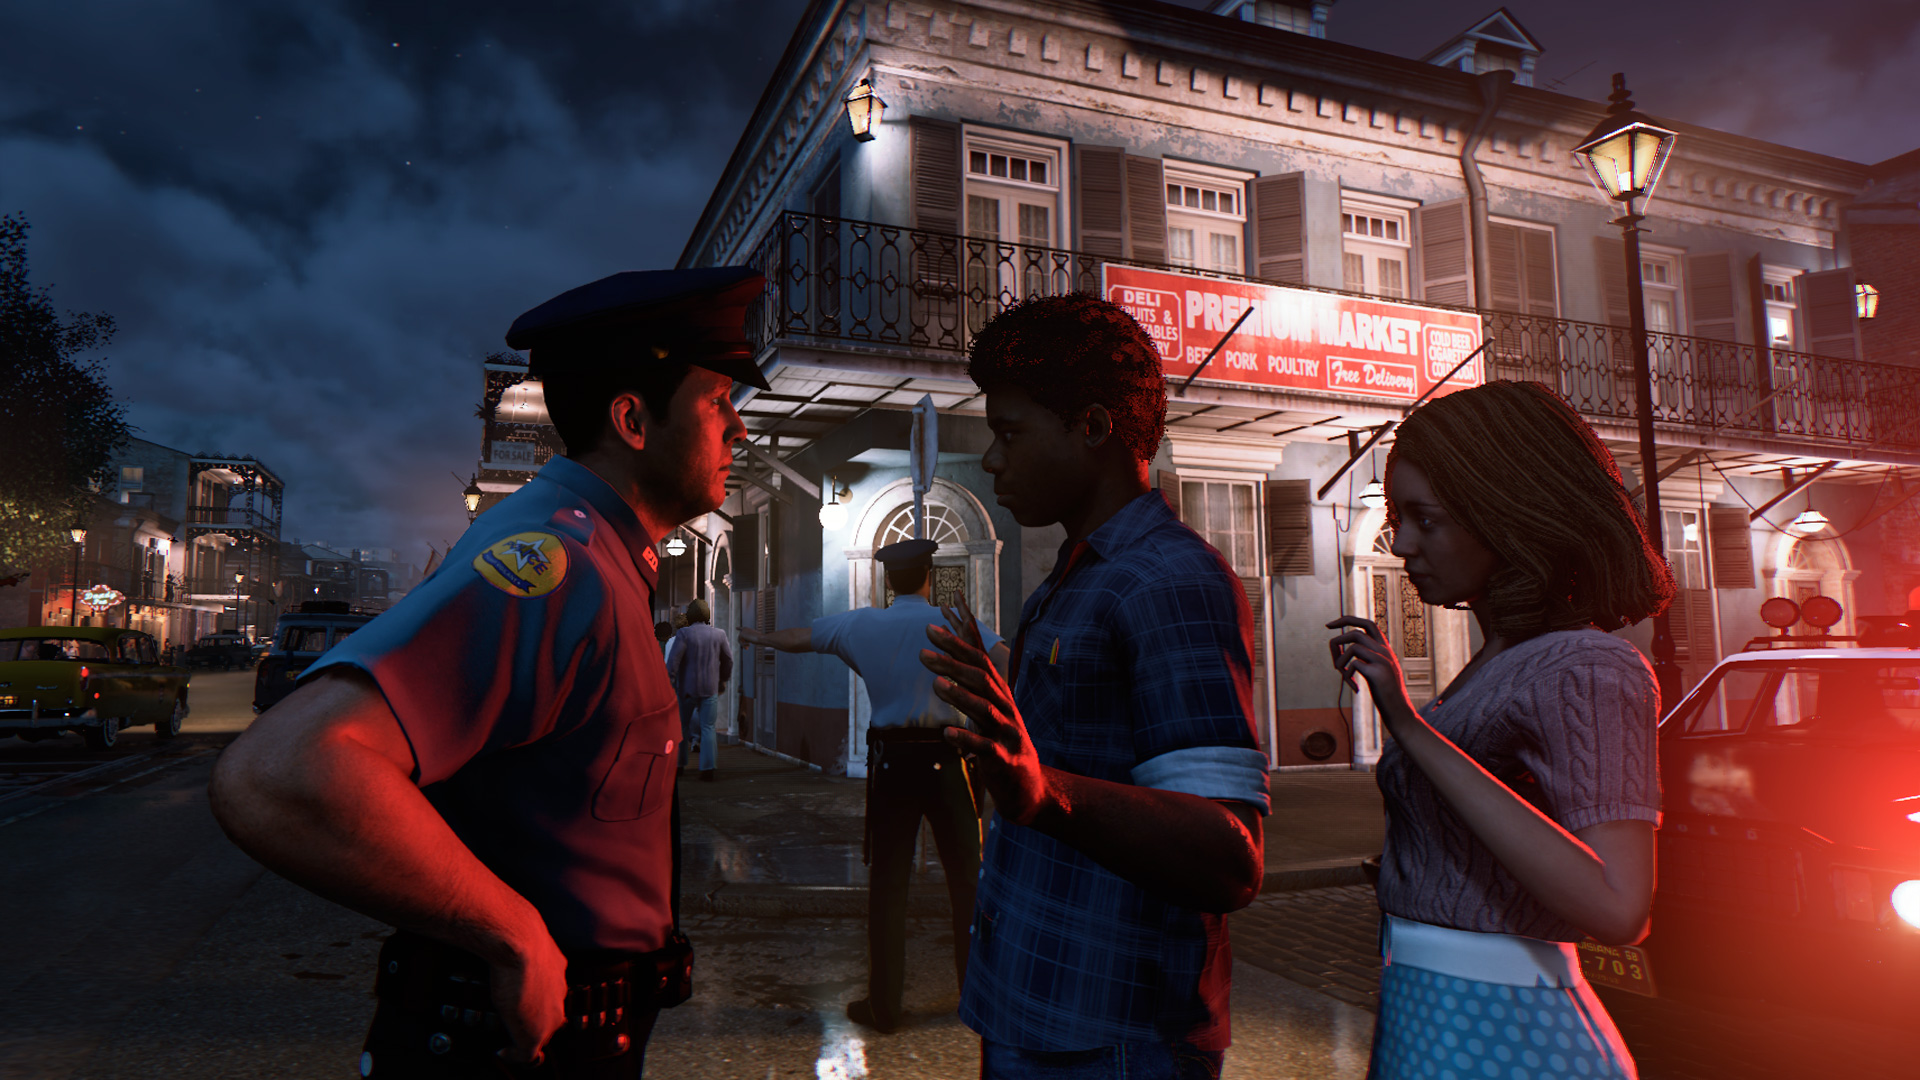 Police in Mafia 3 - Commentary: As Creators, The Game Industry Shares A Part in Ending Racism